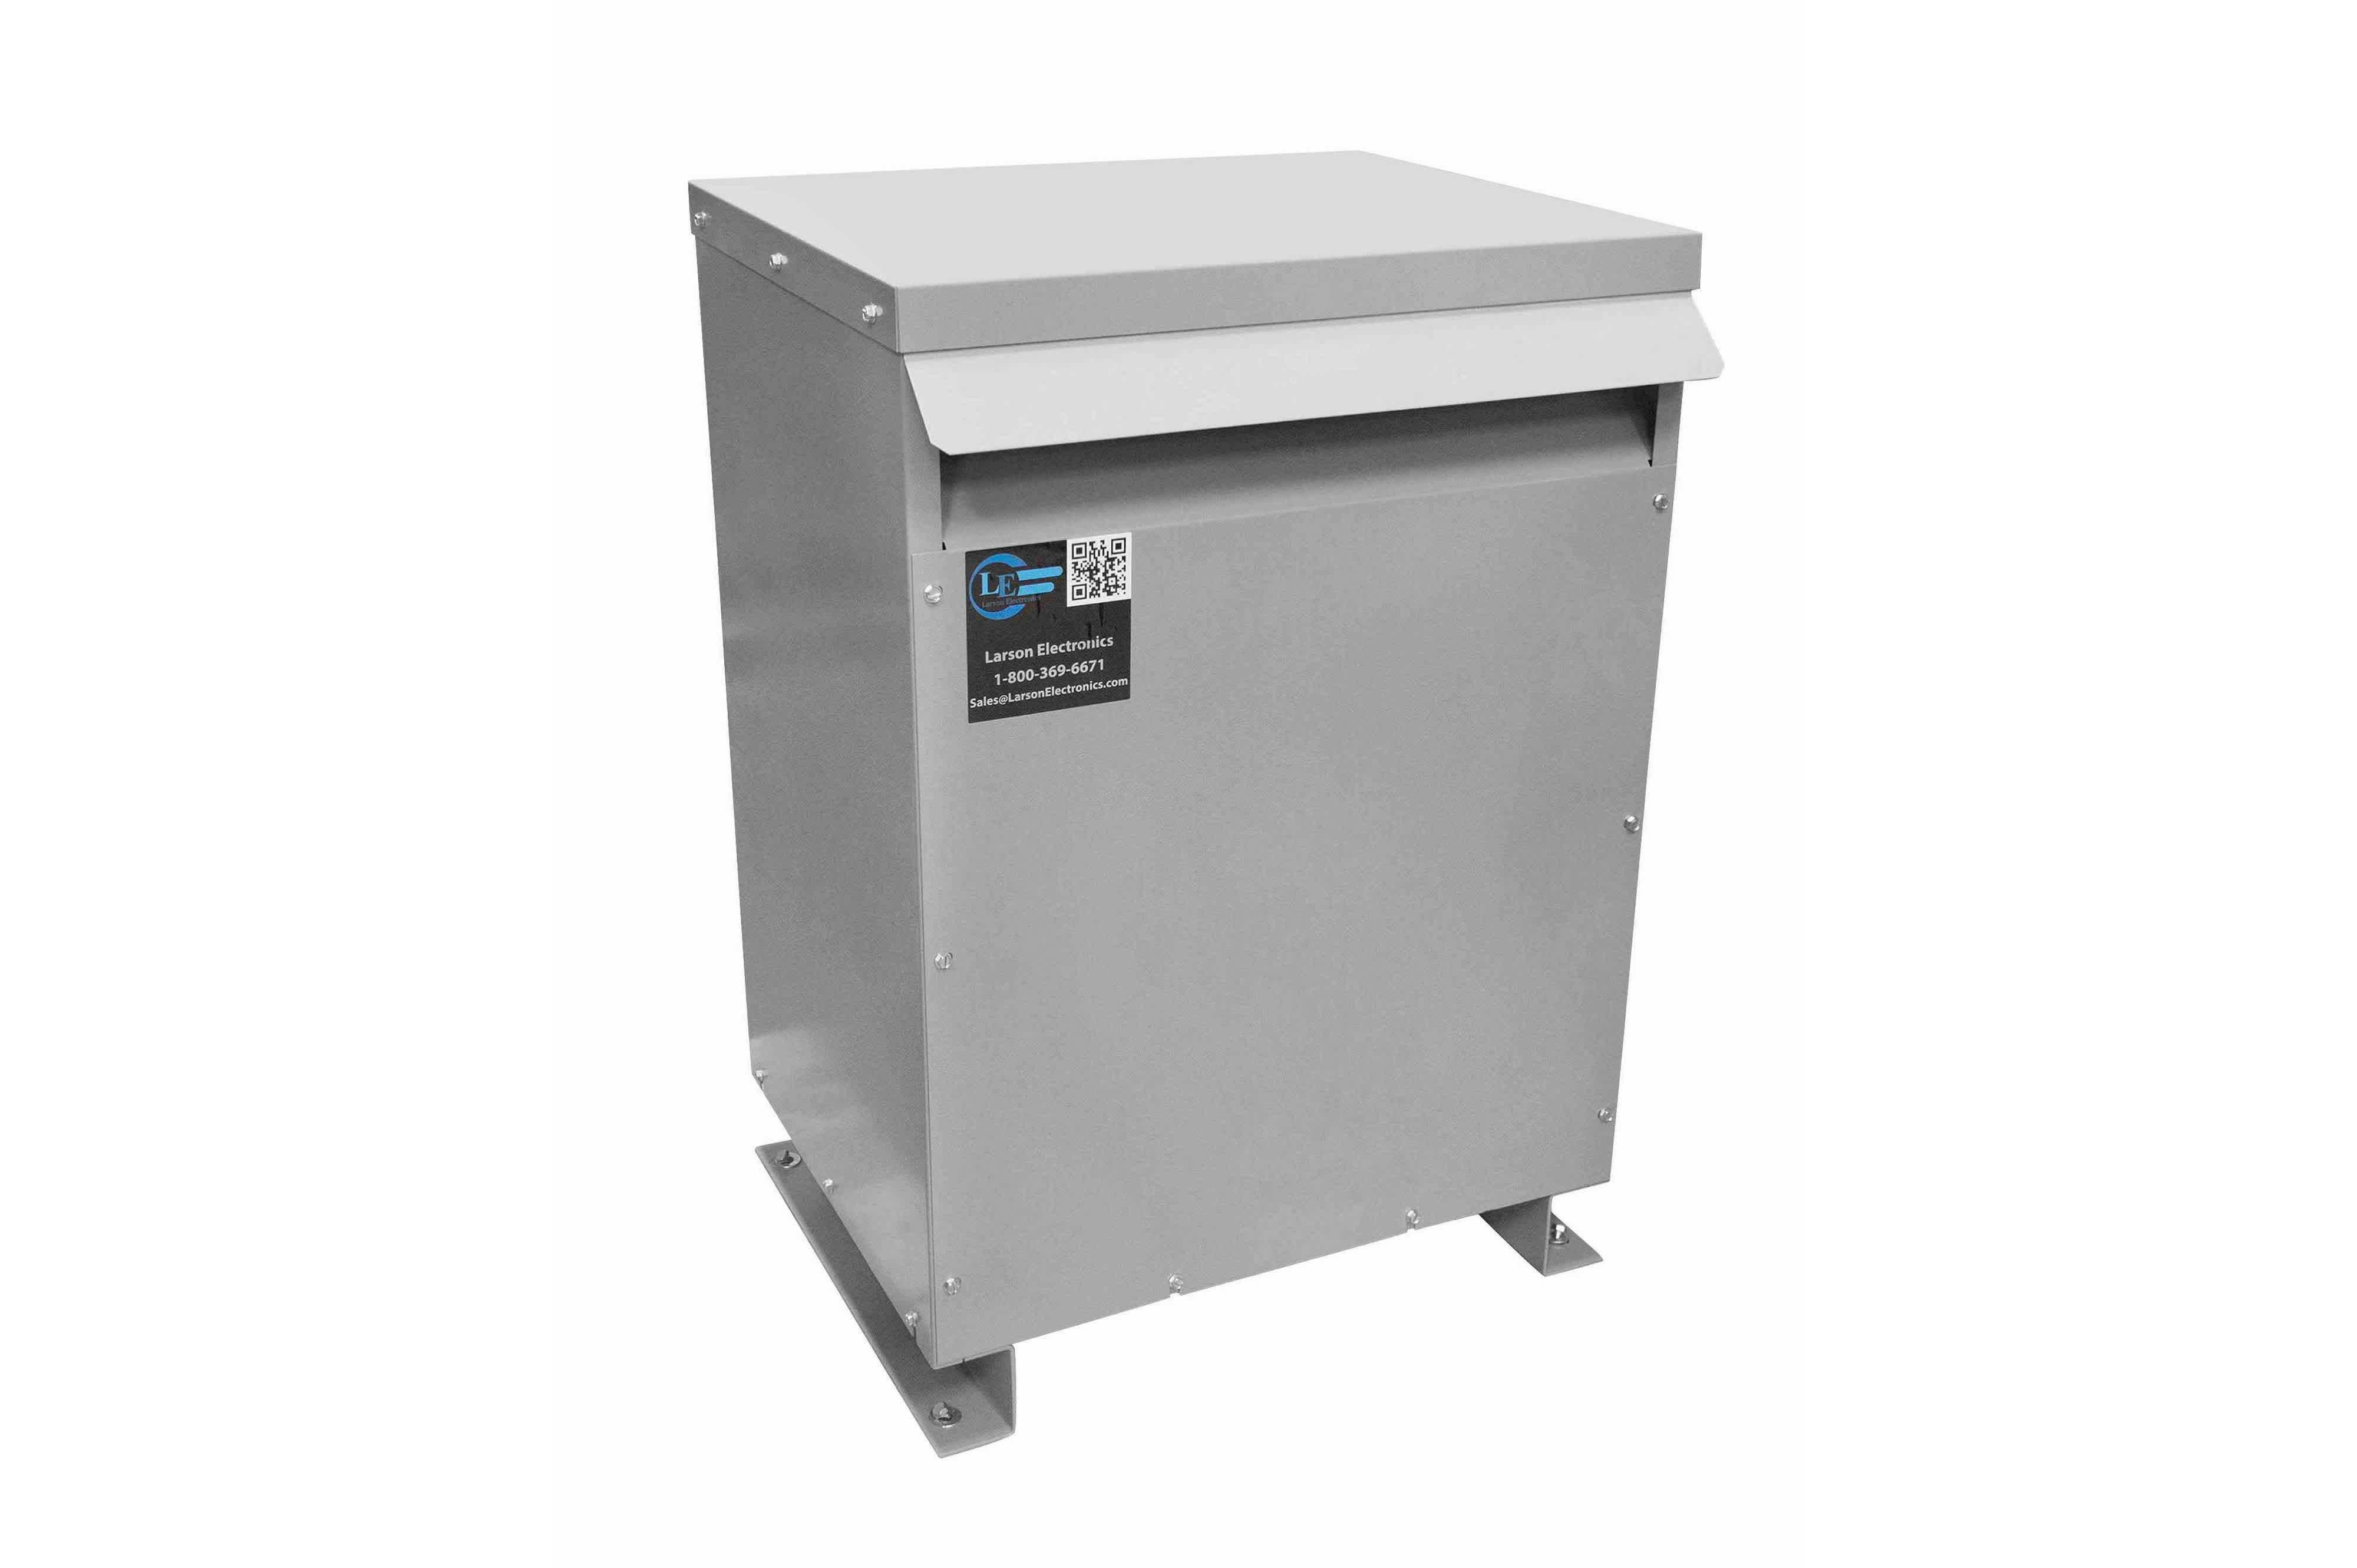 90 kVA 3PH Isolation Transformer, 380V Wye Primary, 240V Delta Secondary, N3R, Ventilated, 60 Hz